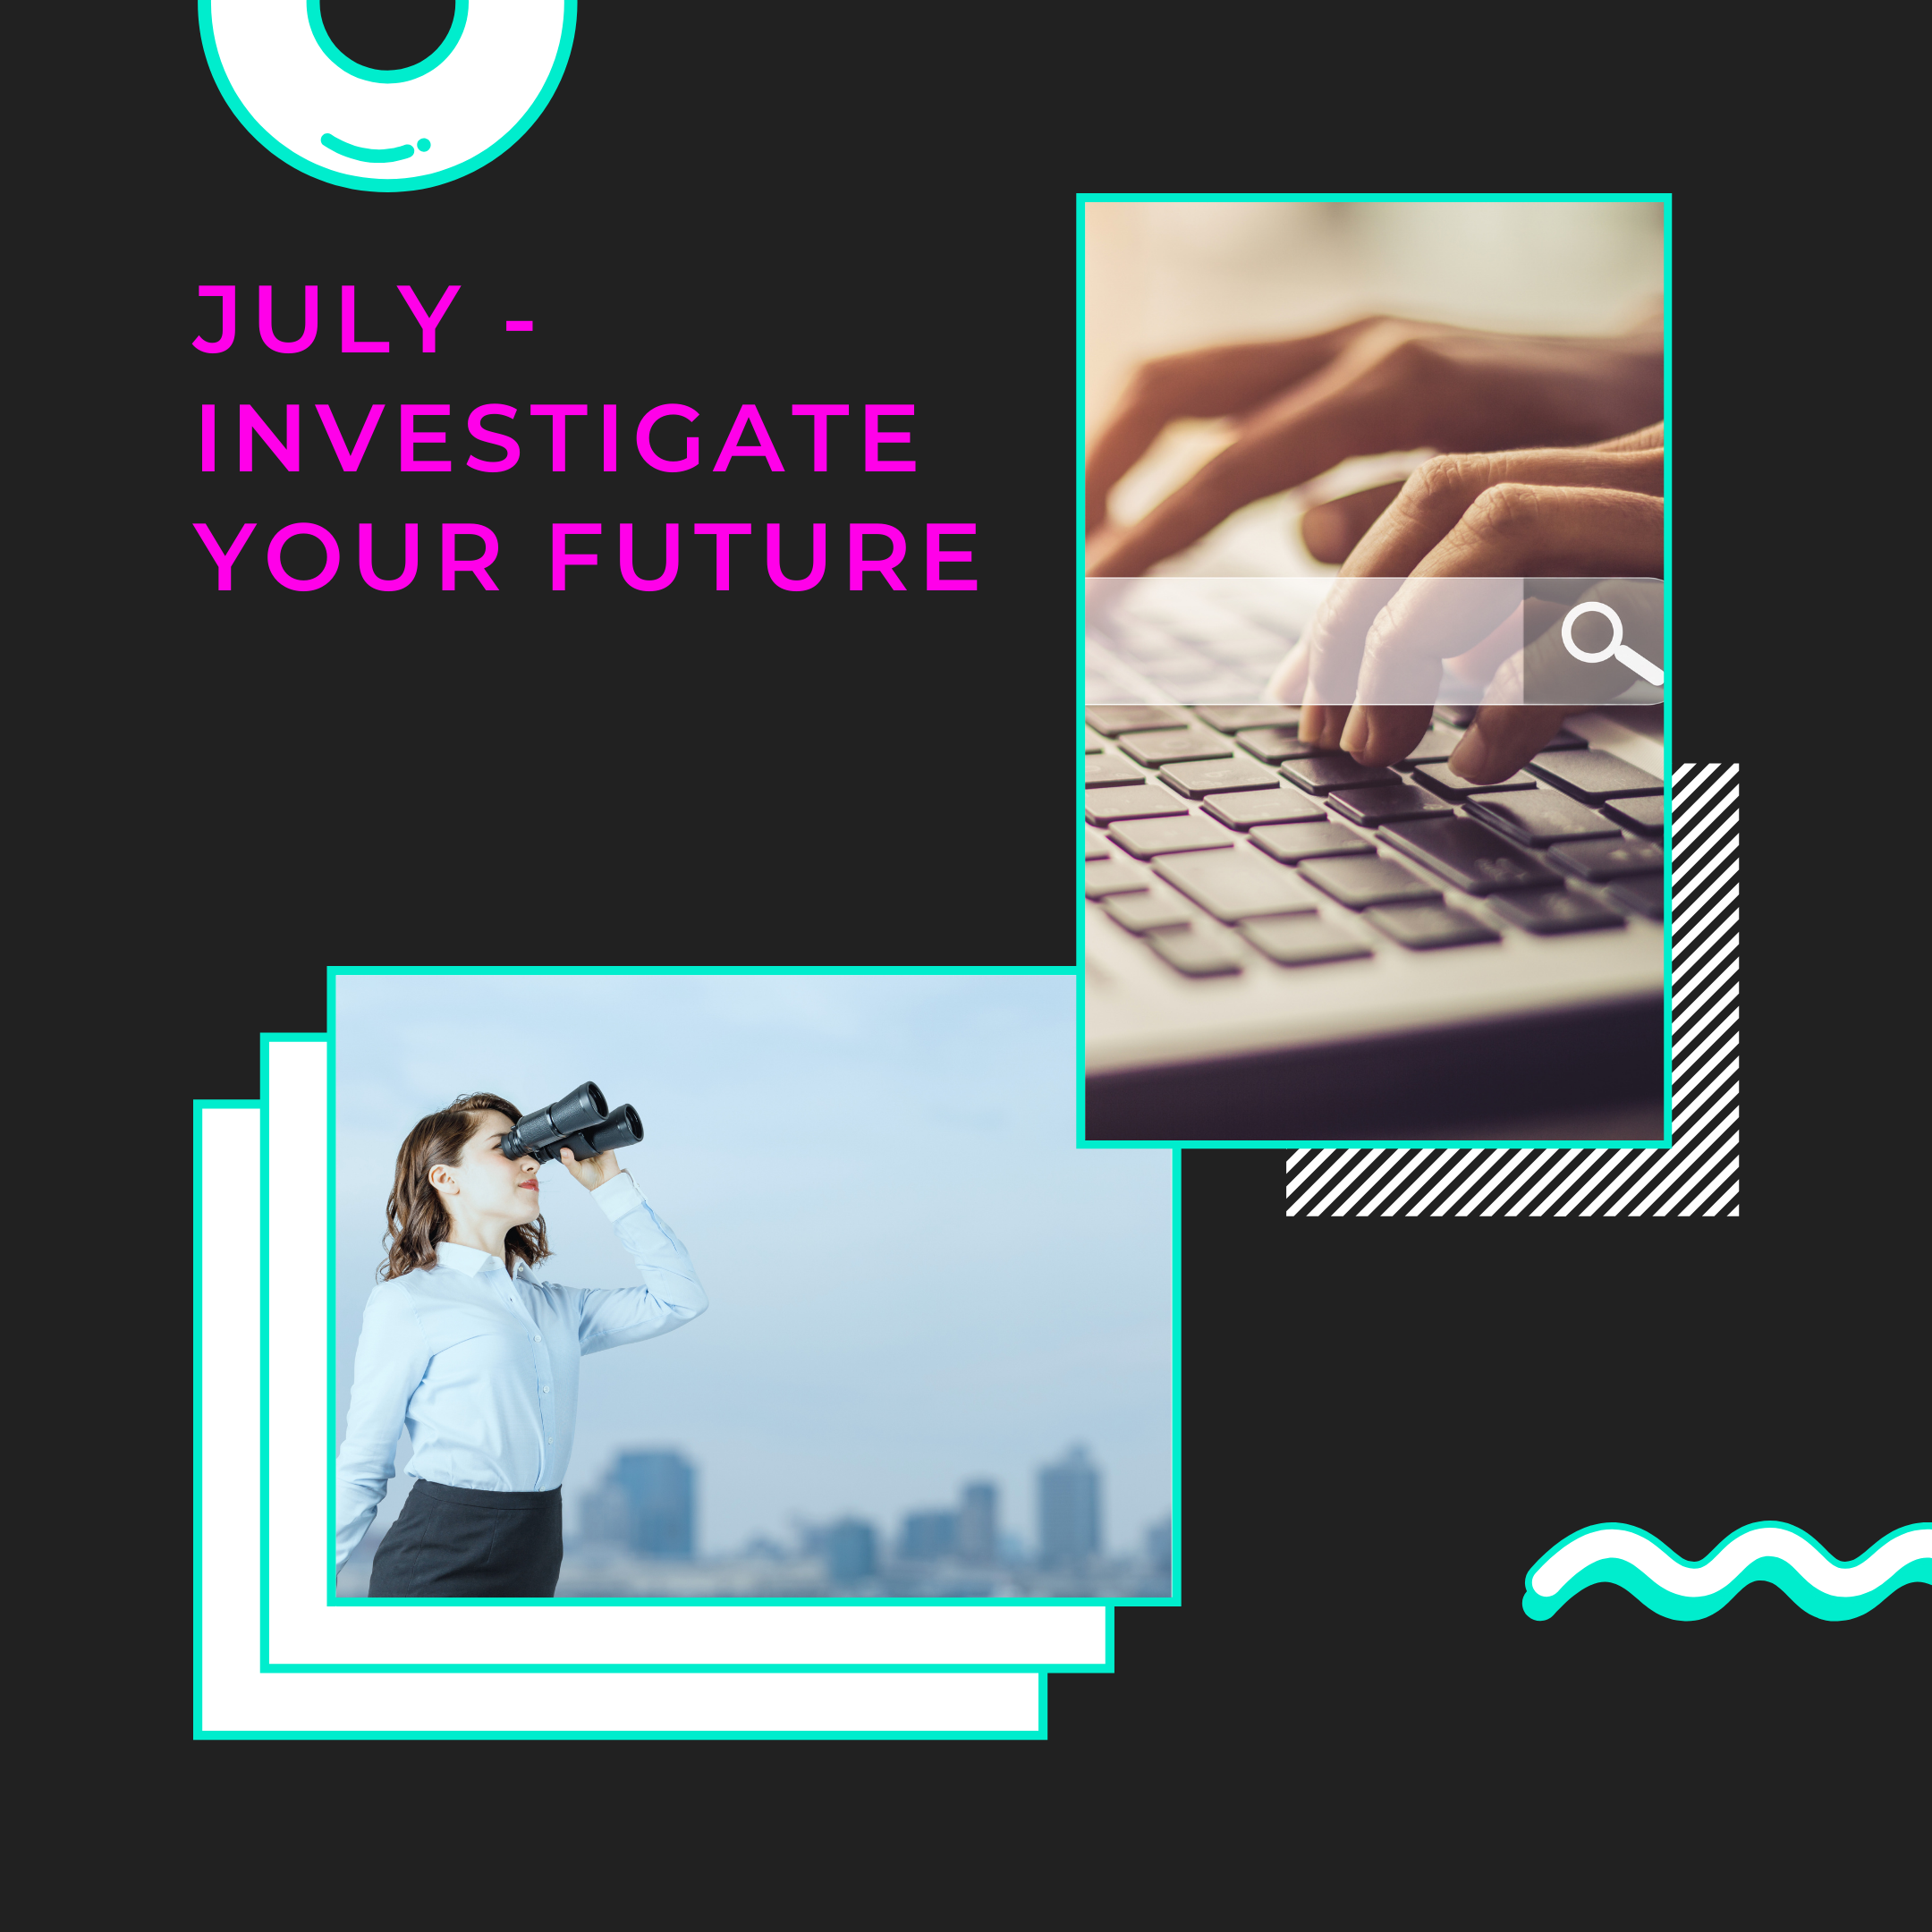 Investigate your future in July